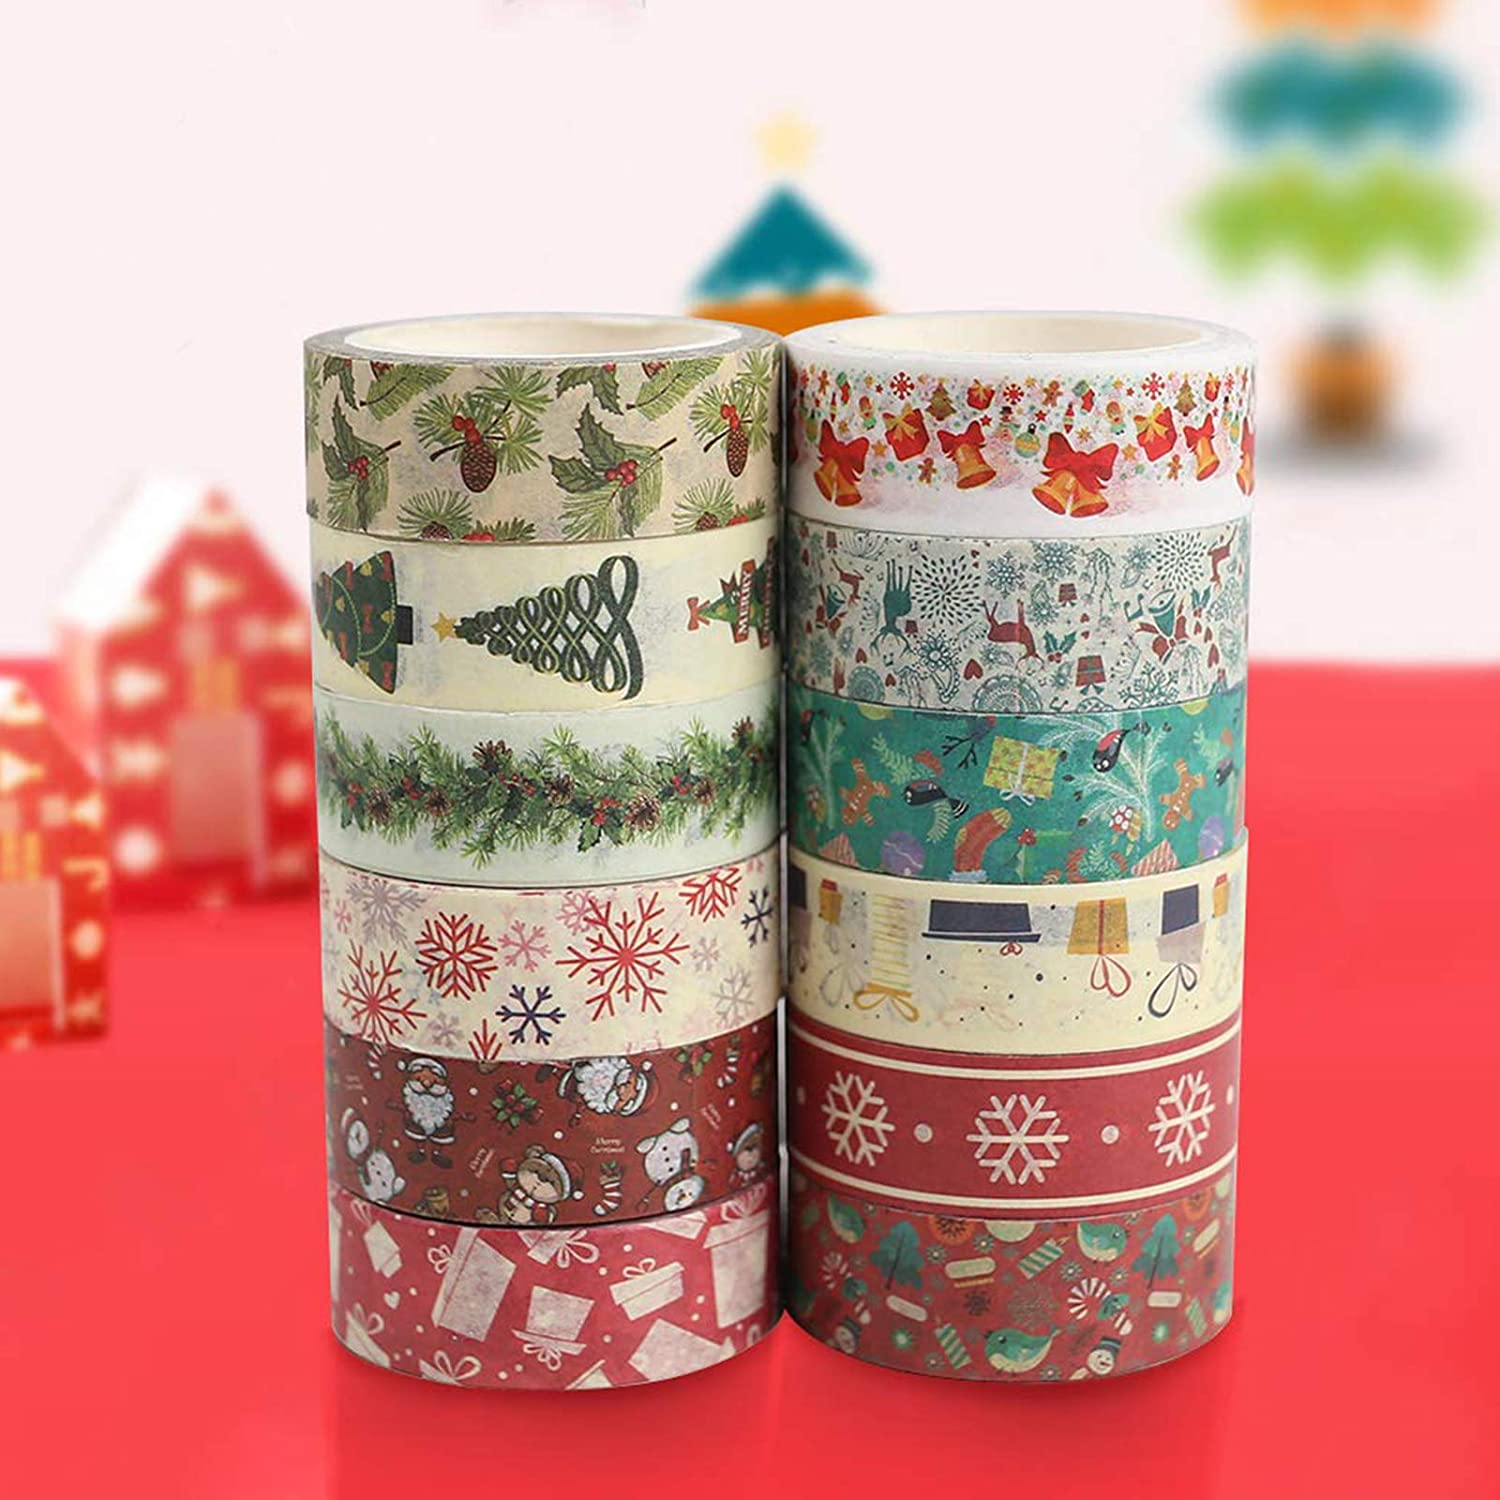 Sopcone 12 Rolls Christmas Washi Tape Total 5M 15mm Wide Masking Tape Set Decorative Foil Holiday Tape for Xmas Wall Tree DIY Scrapbooking Craft Project and Gift Wrapping Bullet Journal Calendar